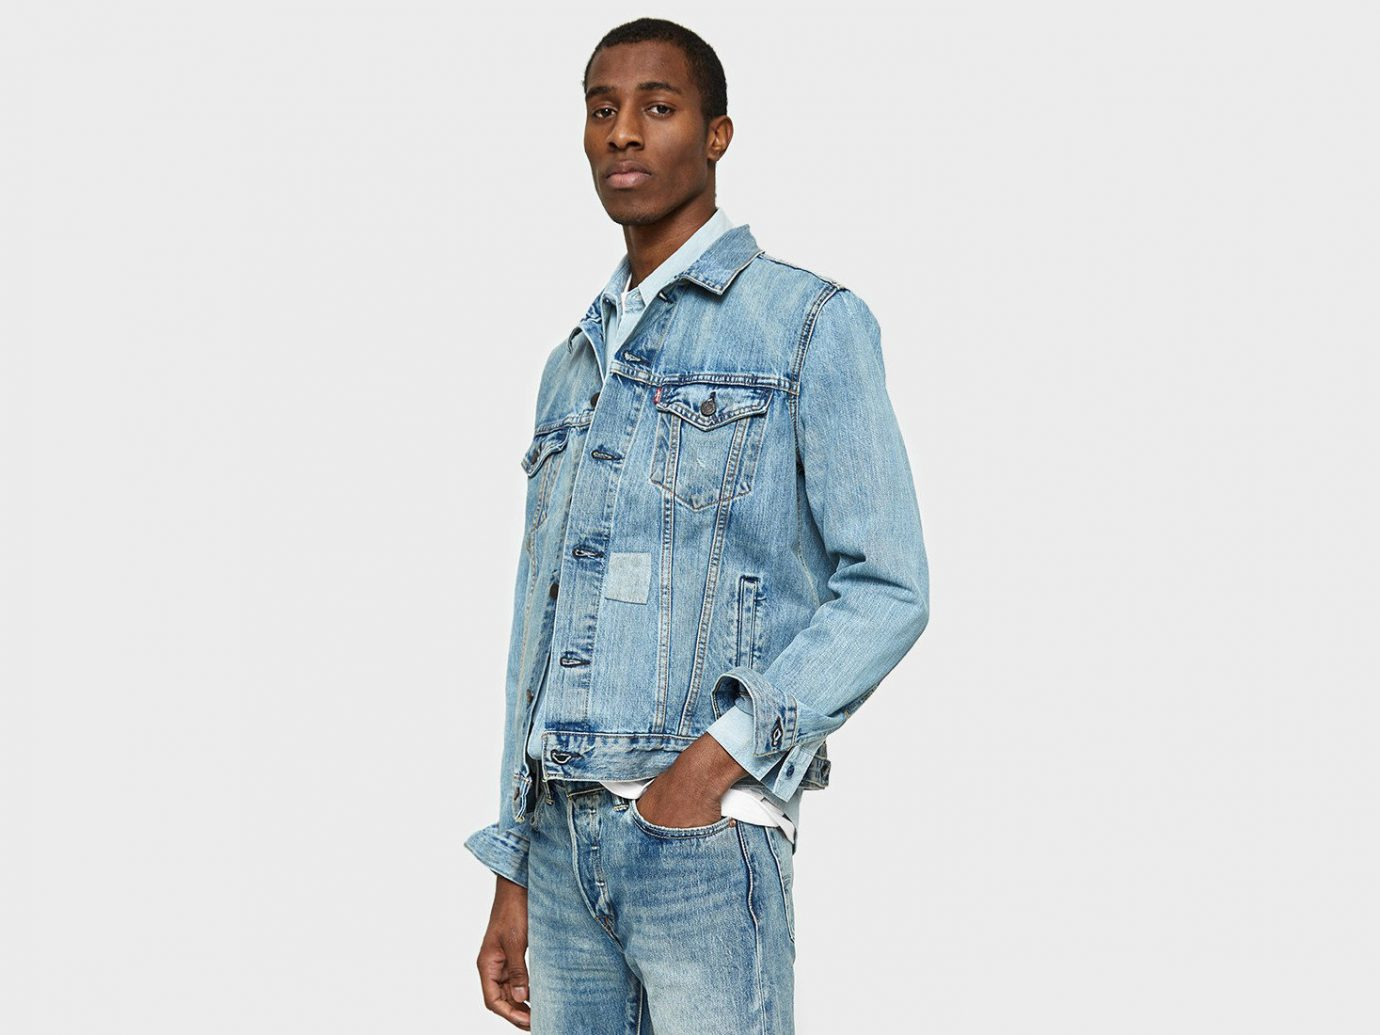 6786a7ffdd009 Style + Design Travel Shop person denim man standing jeans sleeve textile  outerwear shirt jacket material